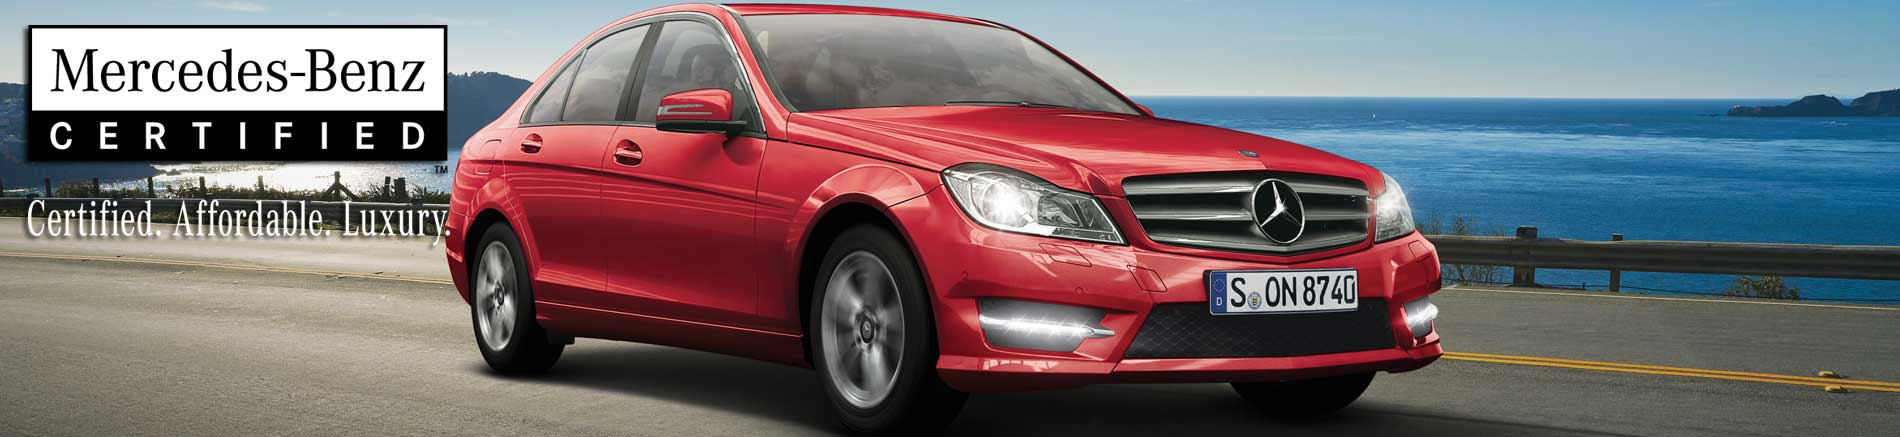 Mercedes-Benz pre-owned clearance vehicles in Newmarket Ontario